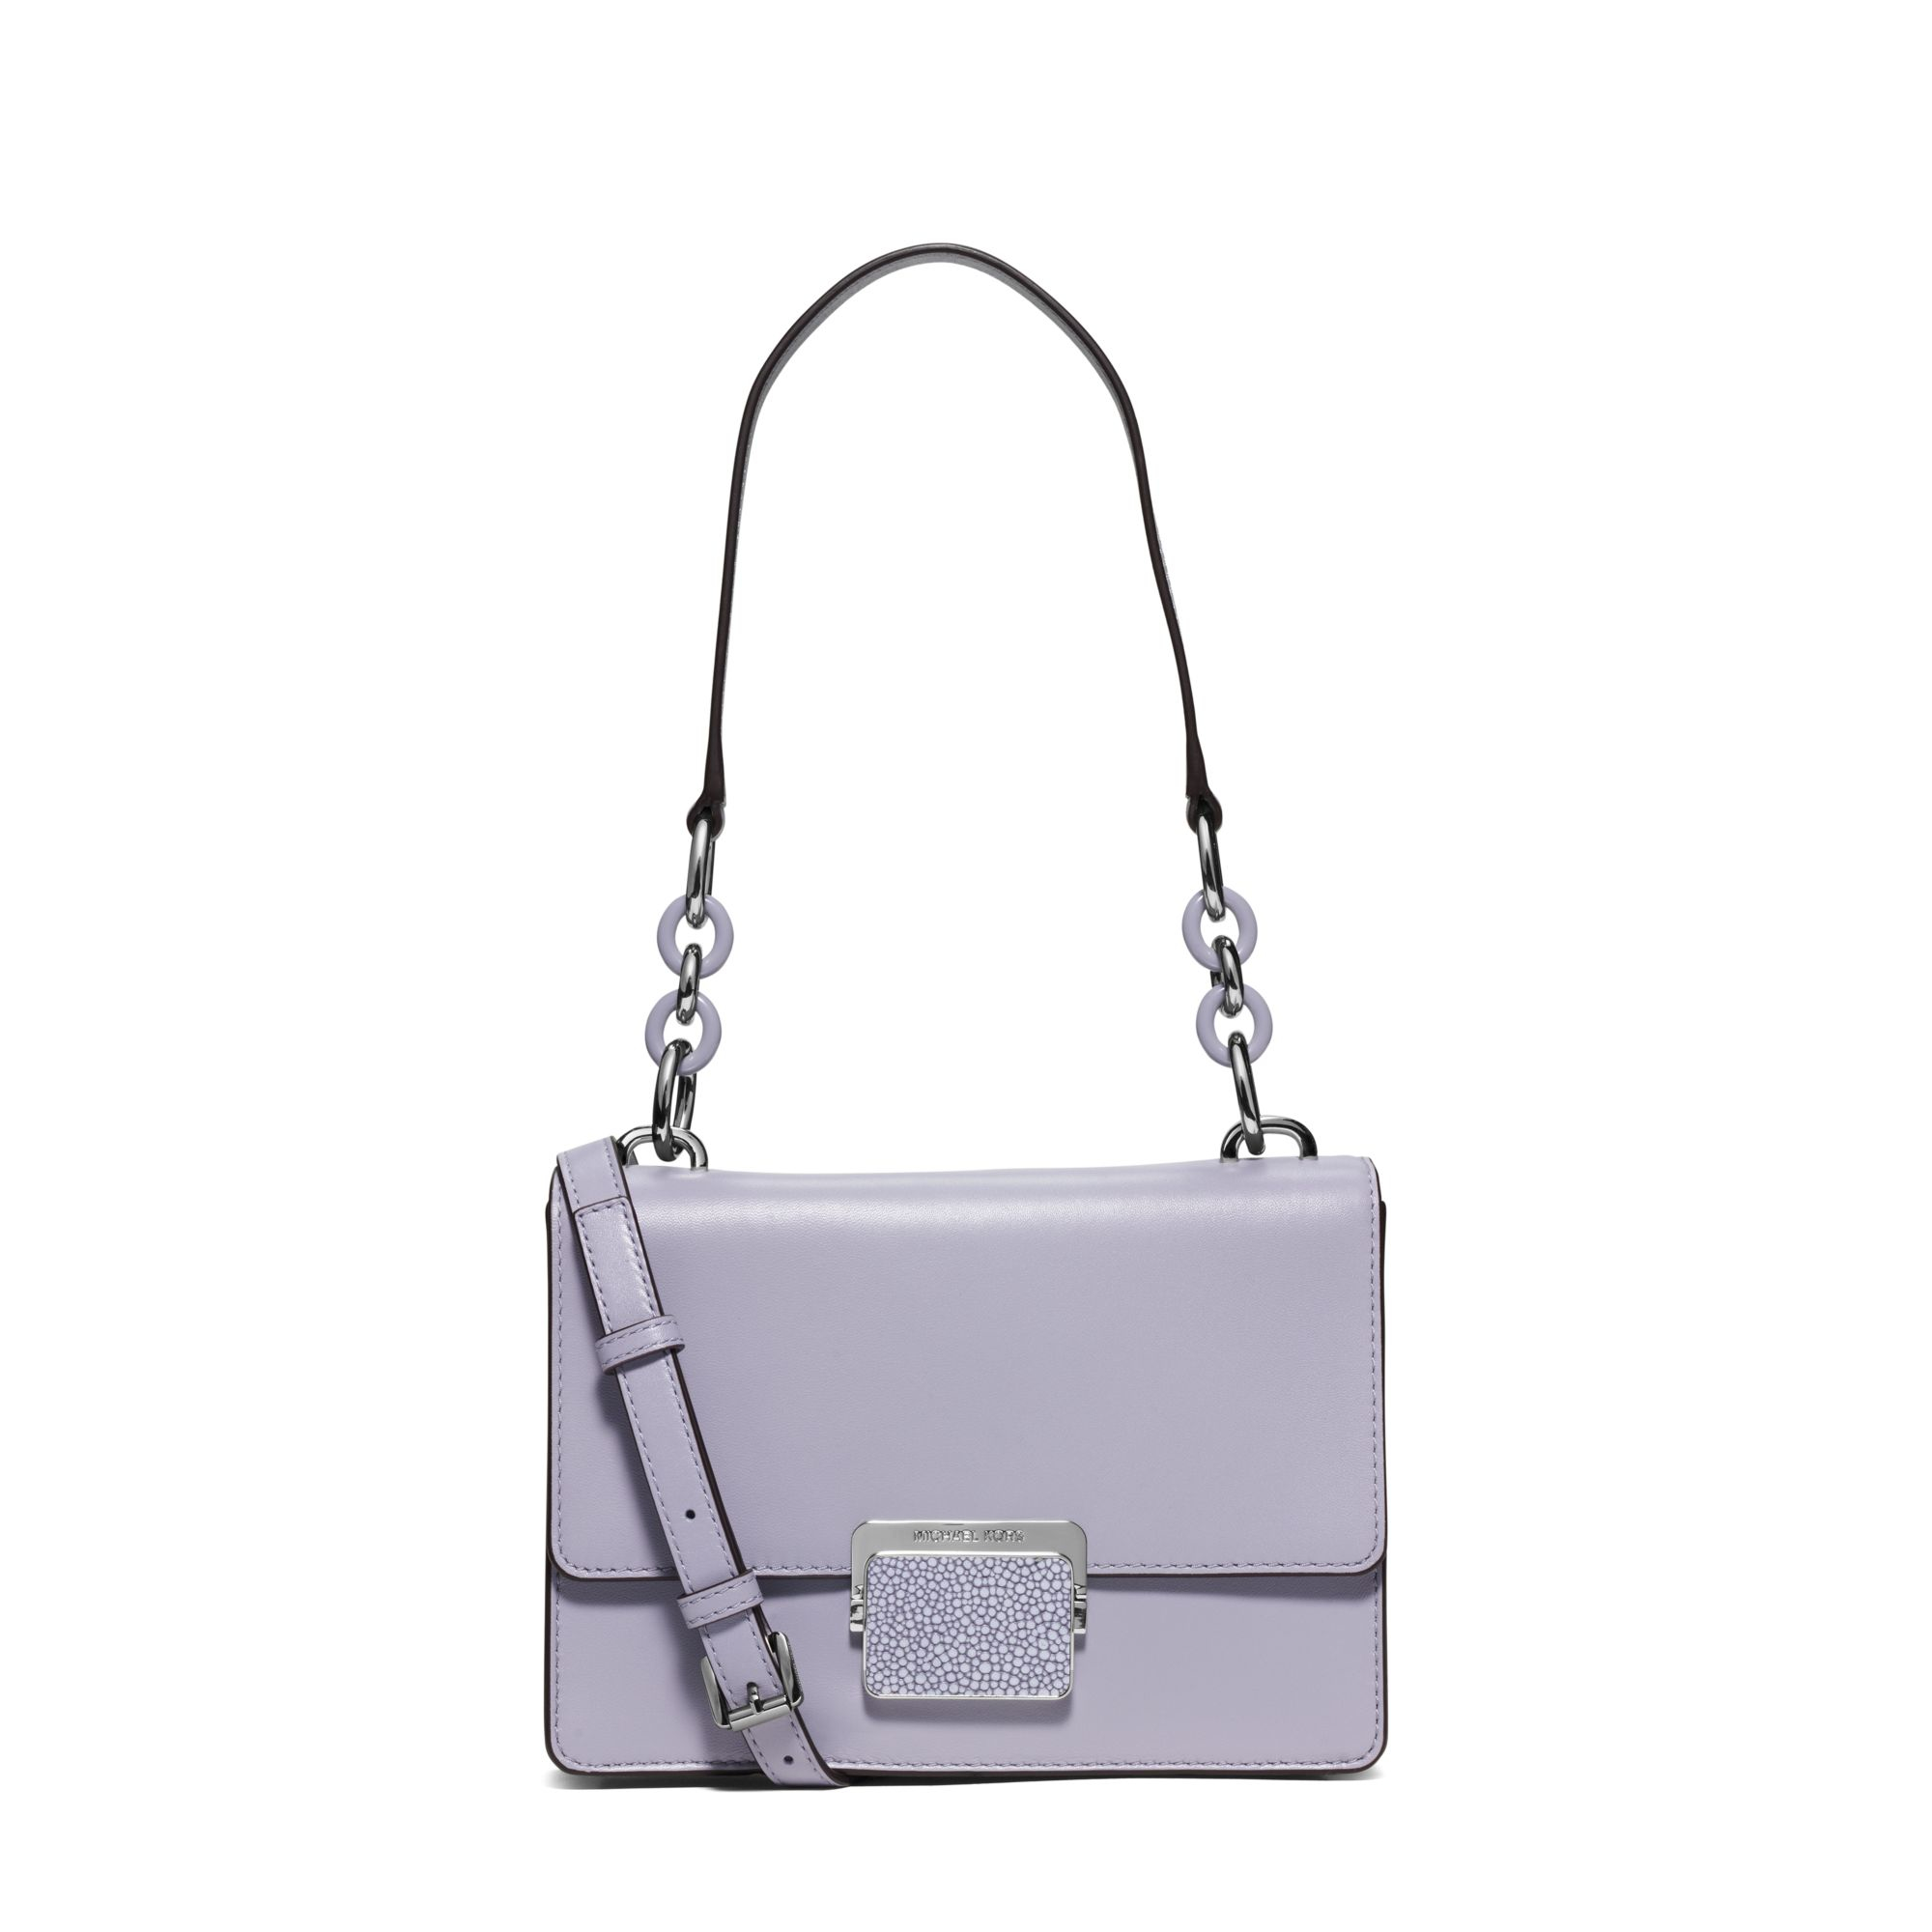 d4a0f2e08902 Lyst - Michael Kors Cynthia Small Leather Shoulder Bag in Purple